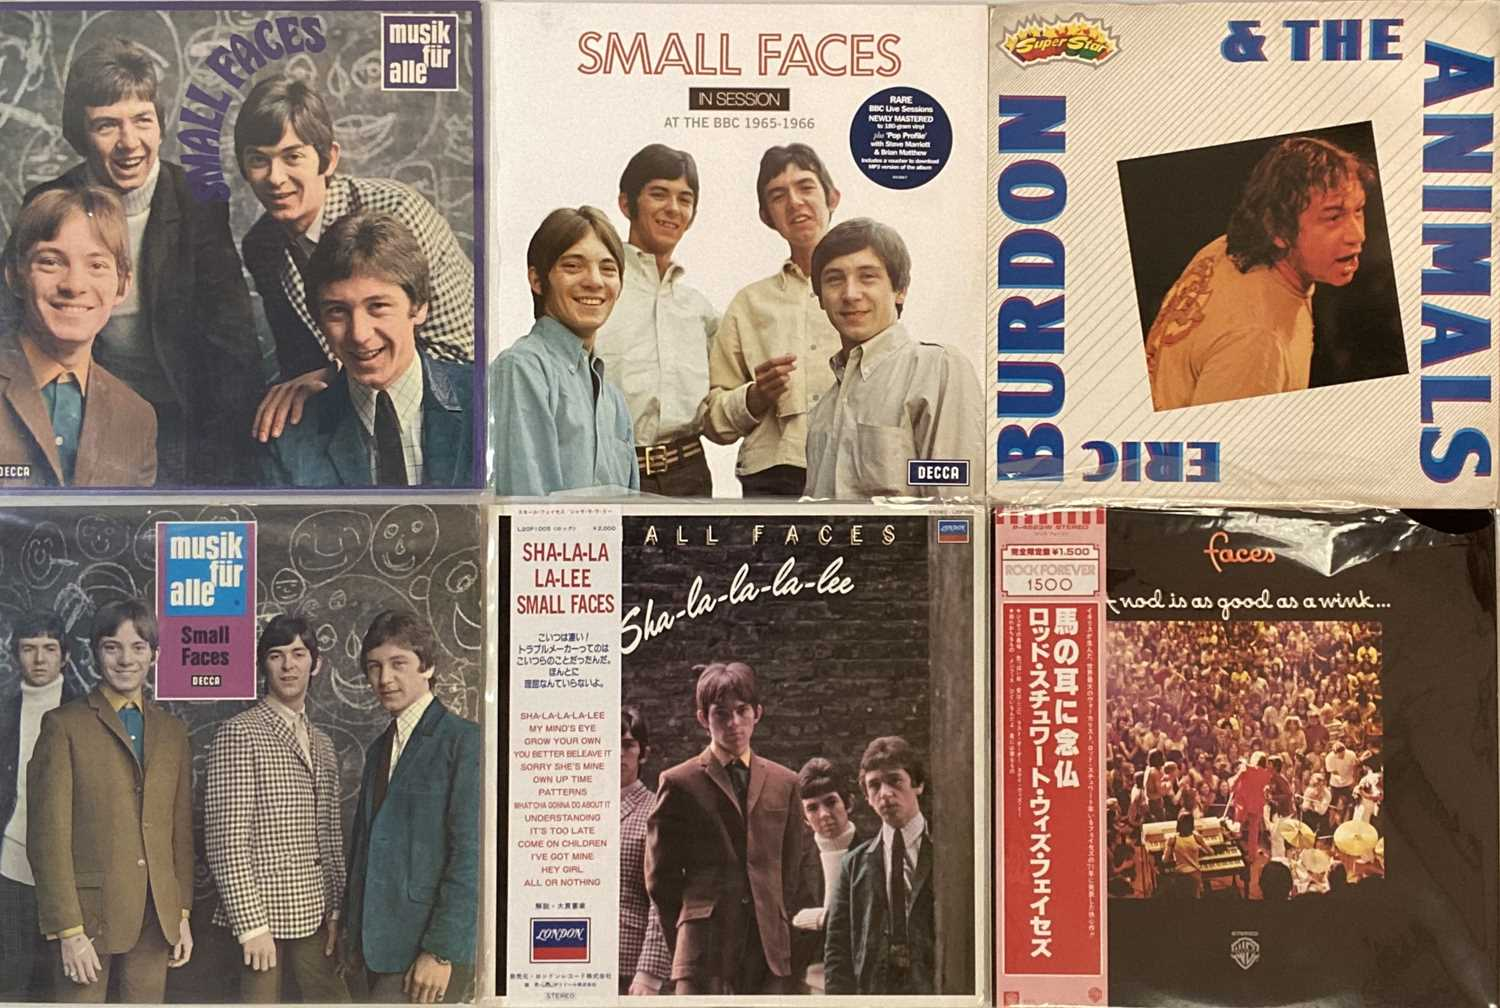 THE ANIMALS/ FACES/ SMALL FACES - LPs - Image 2 of 3